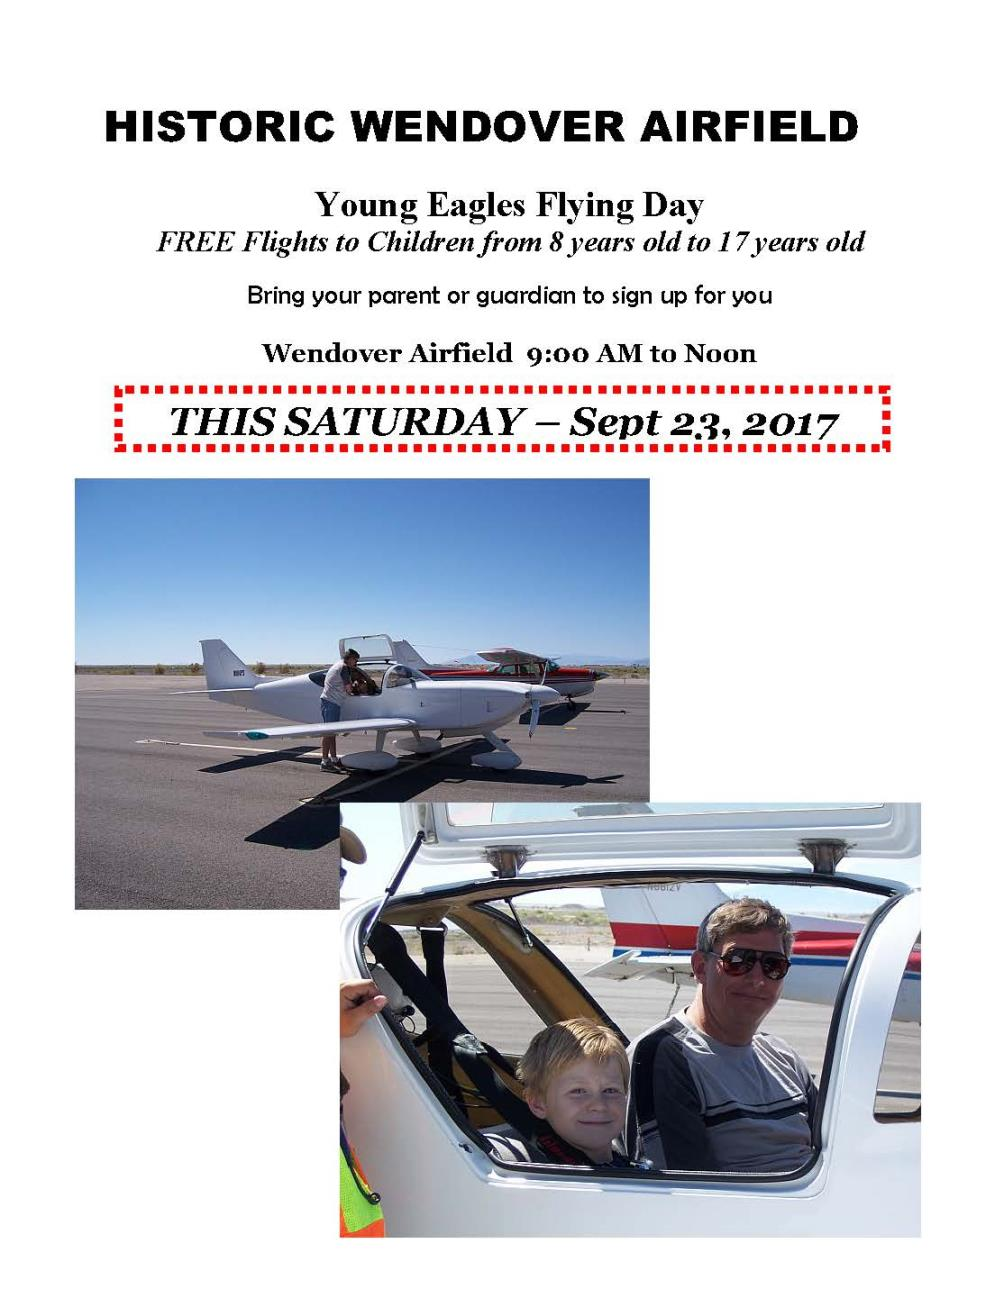 Young Eagles Flying Day - Wendover Airport